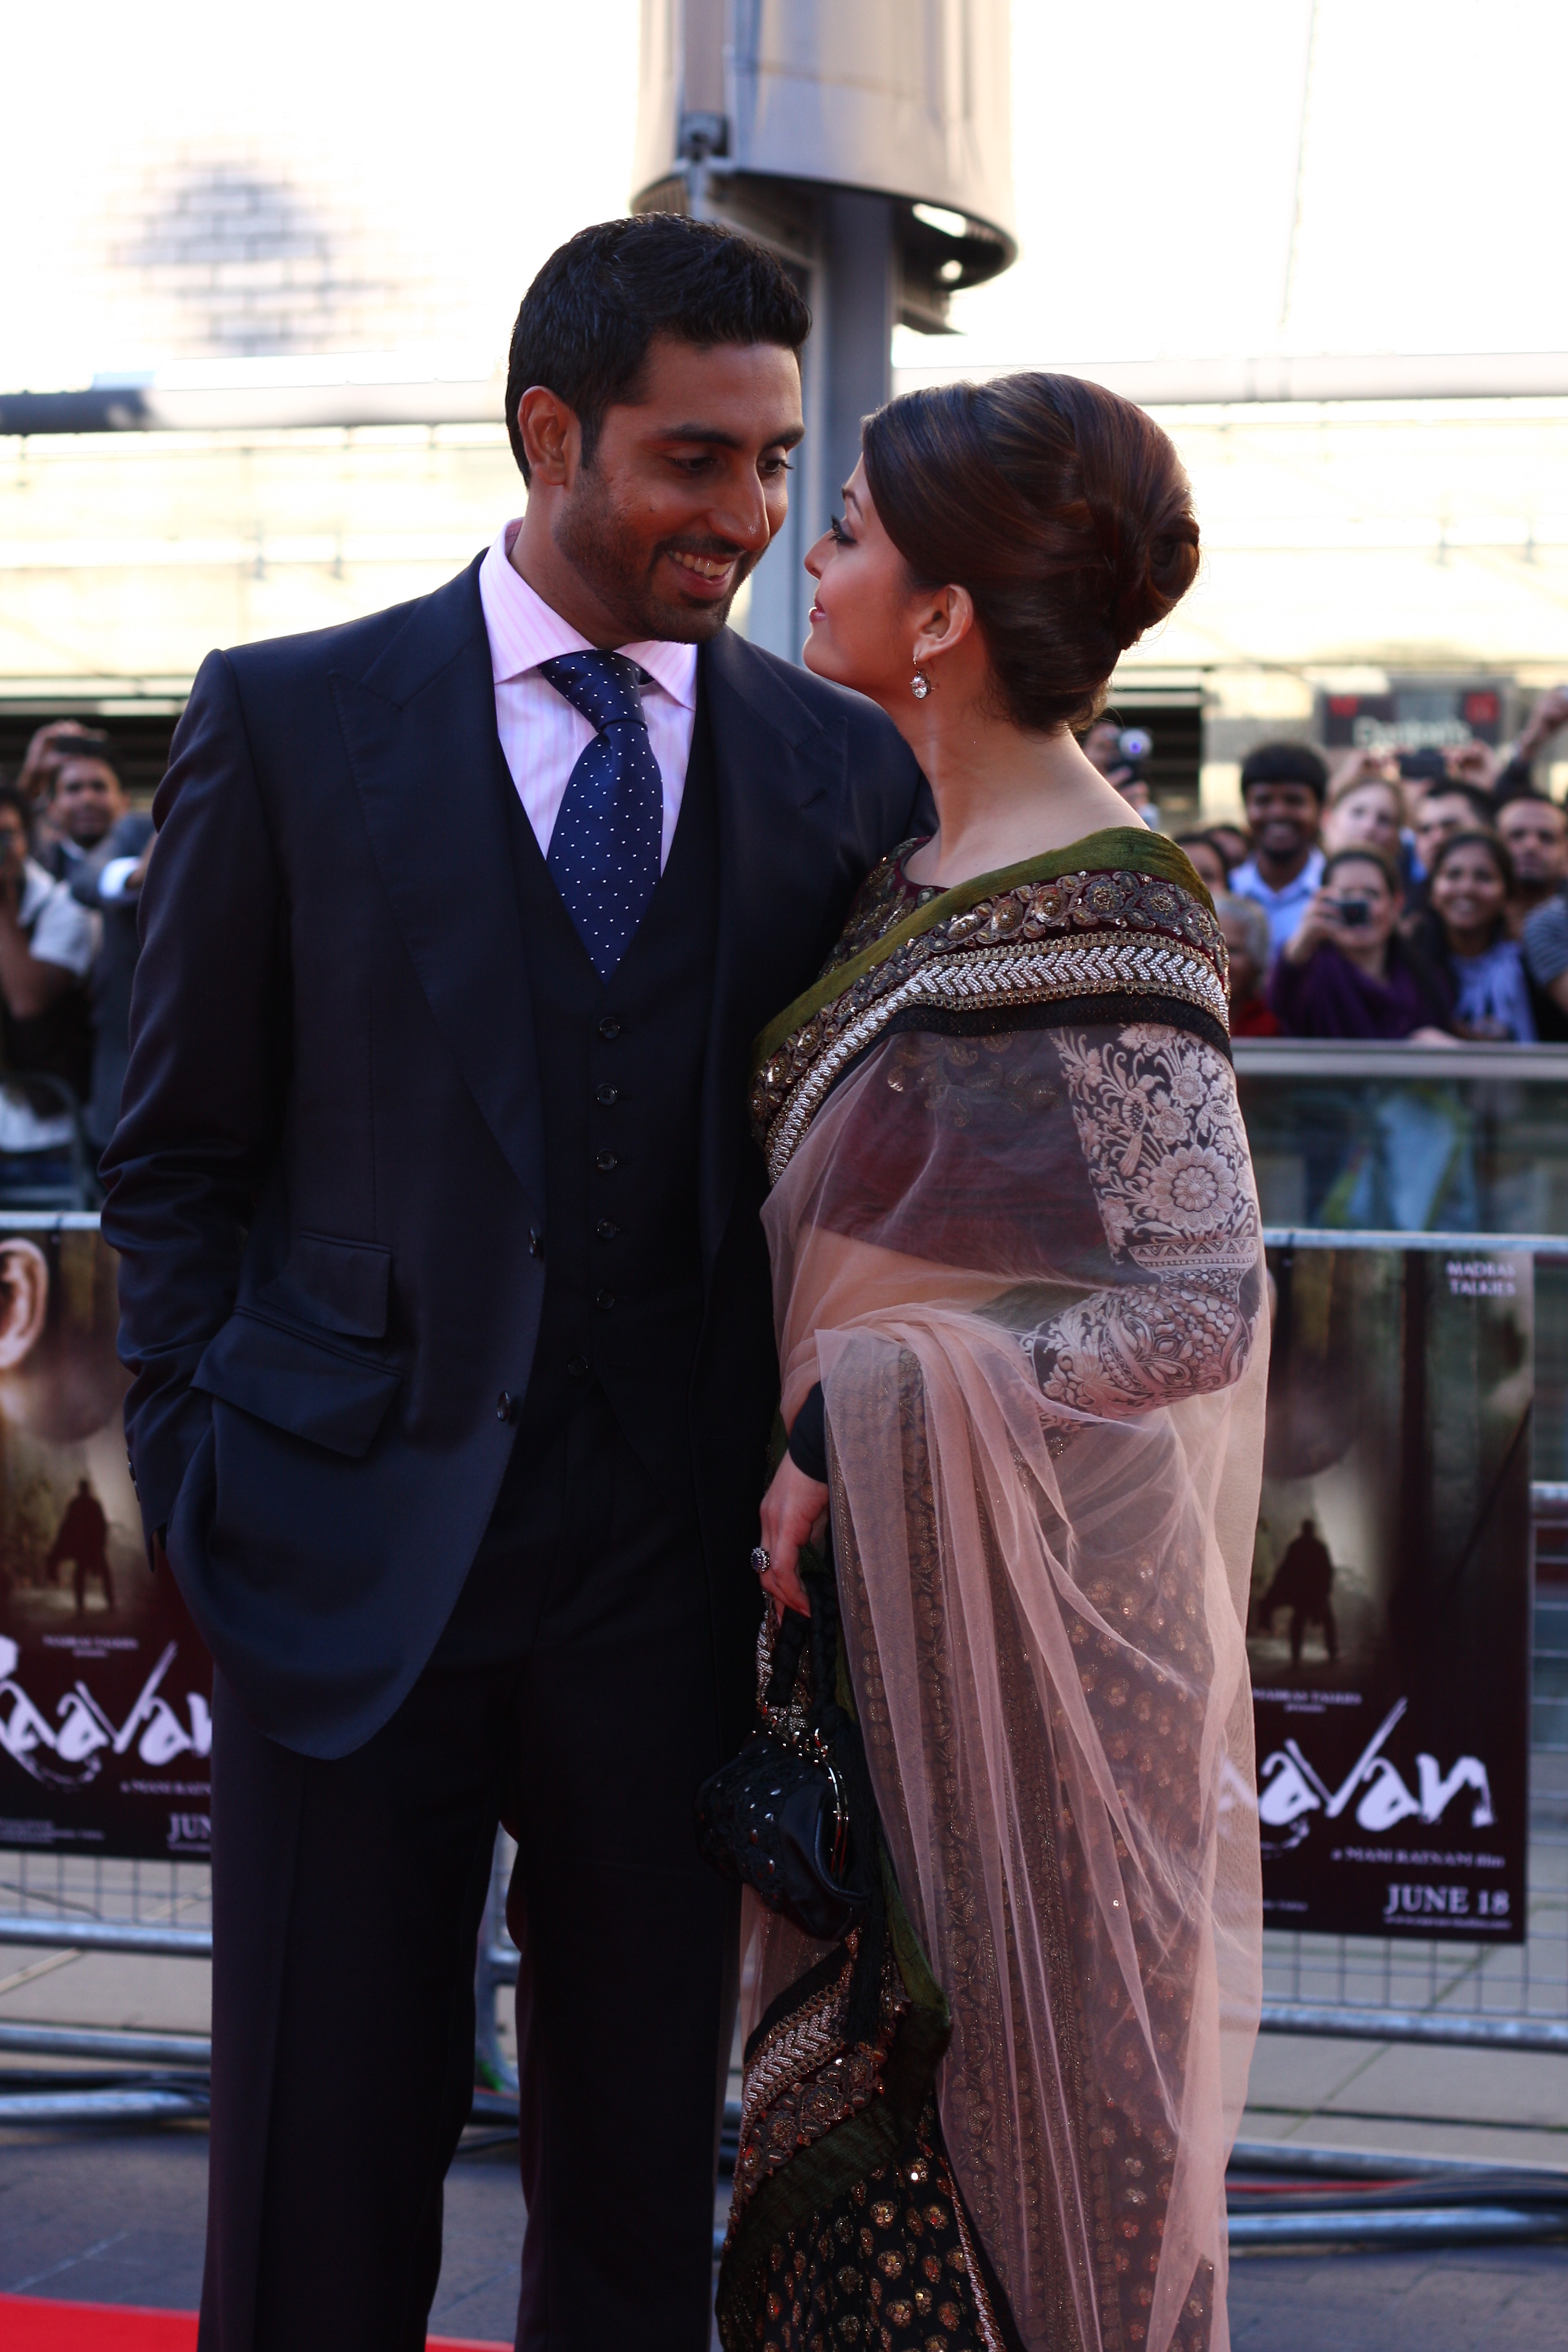 Abhishek Bachchan Breaks His Silence About Trouble In His Marriage